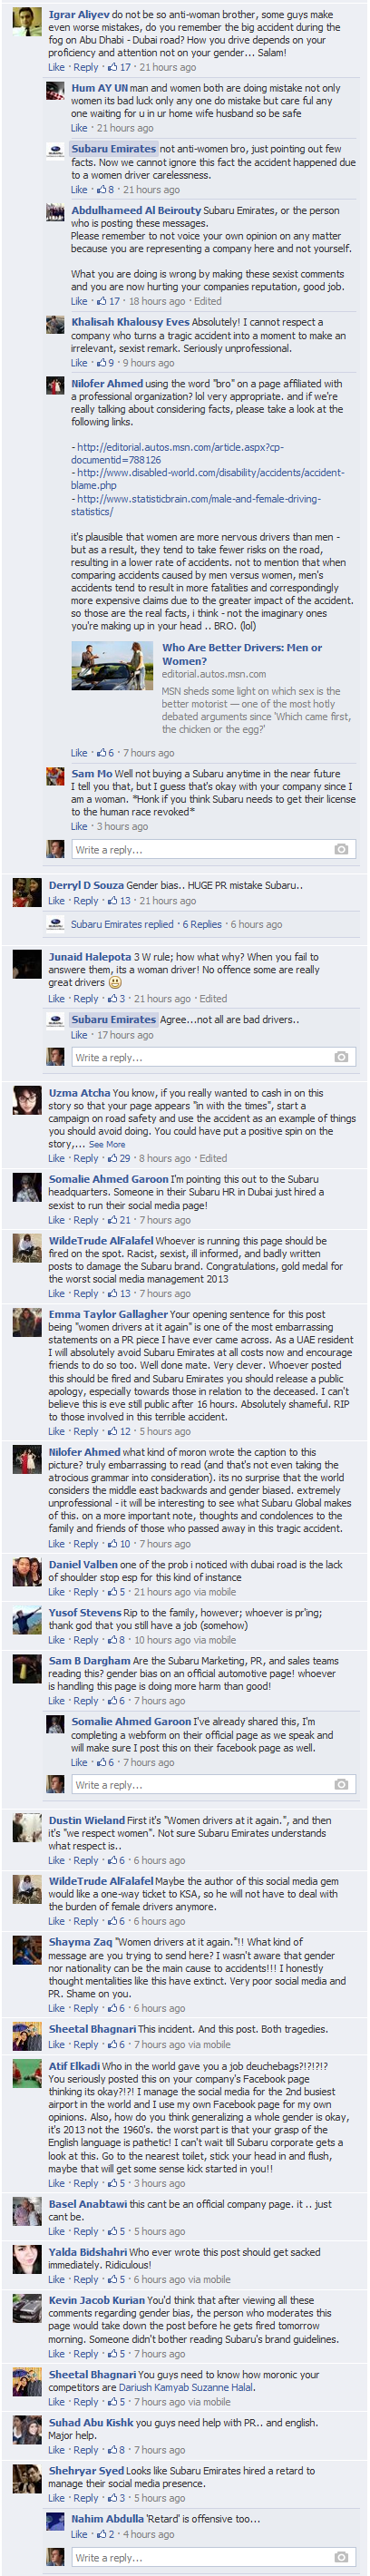 Subaru Emirates, Facebook, sexism, racism, and loss of life